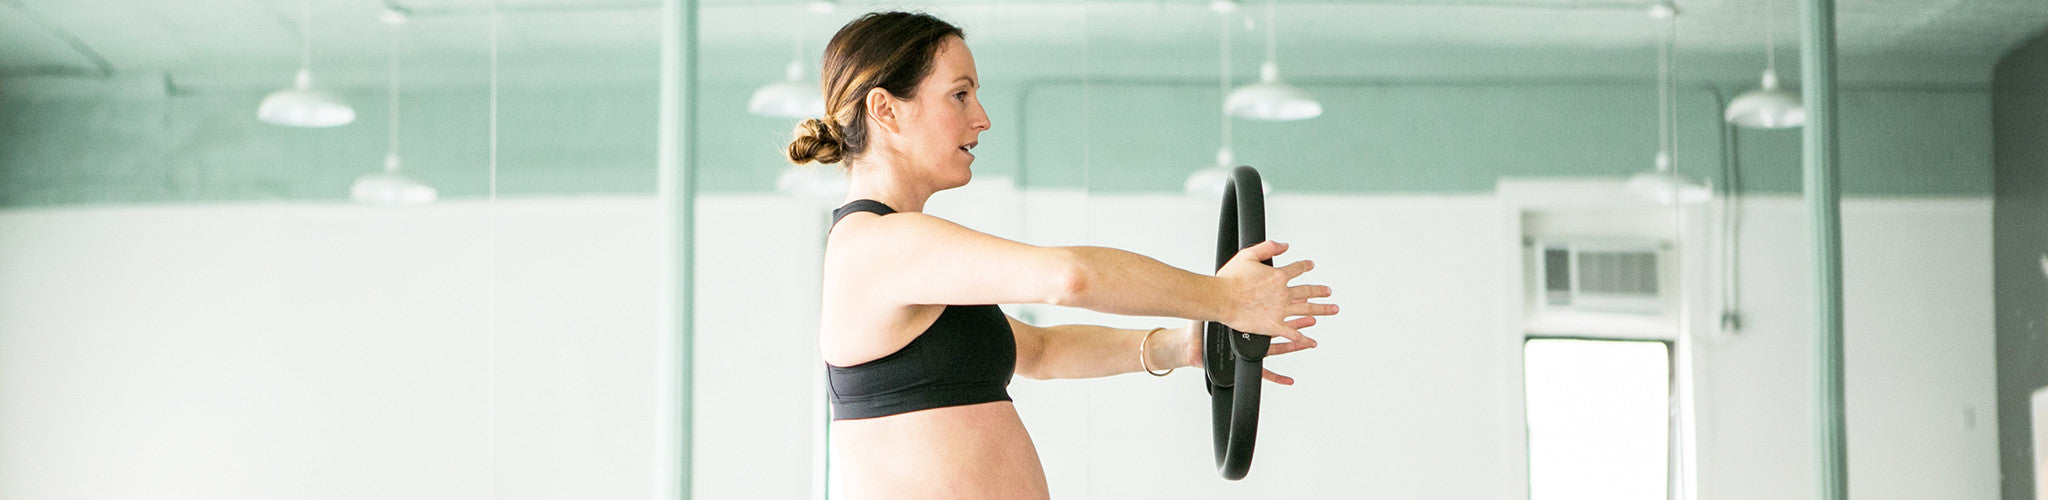 Prenatal Arms Workout #2